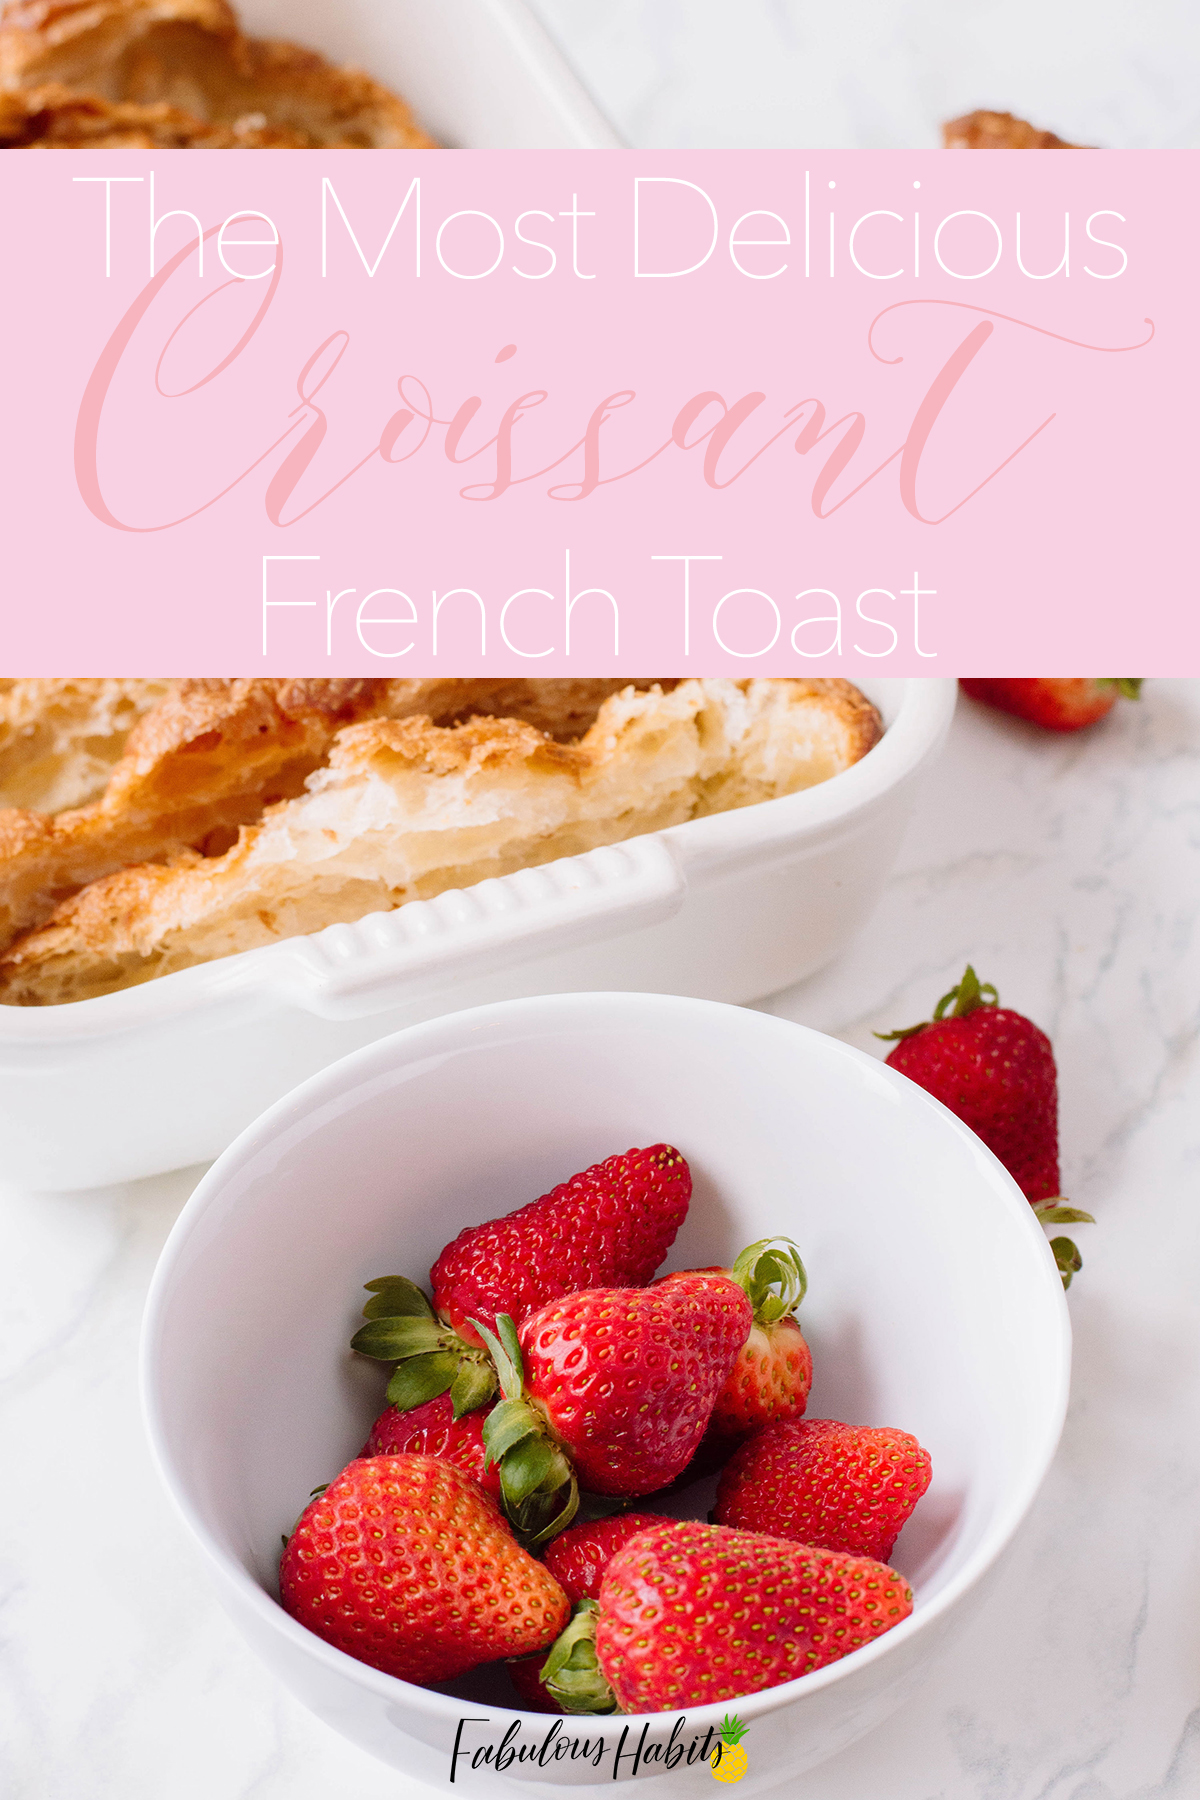 Croissant French toast is easy-peasy to make. Whether for Sunday brunch or Mother's Day, this sweet meal is perfect for any occasion!